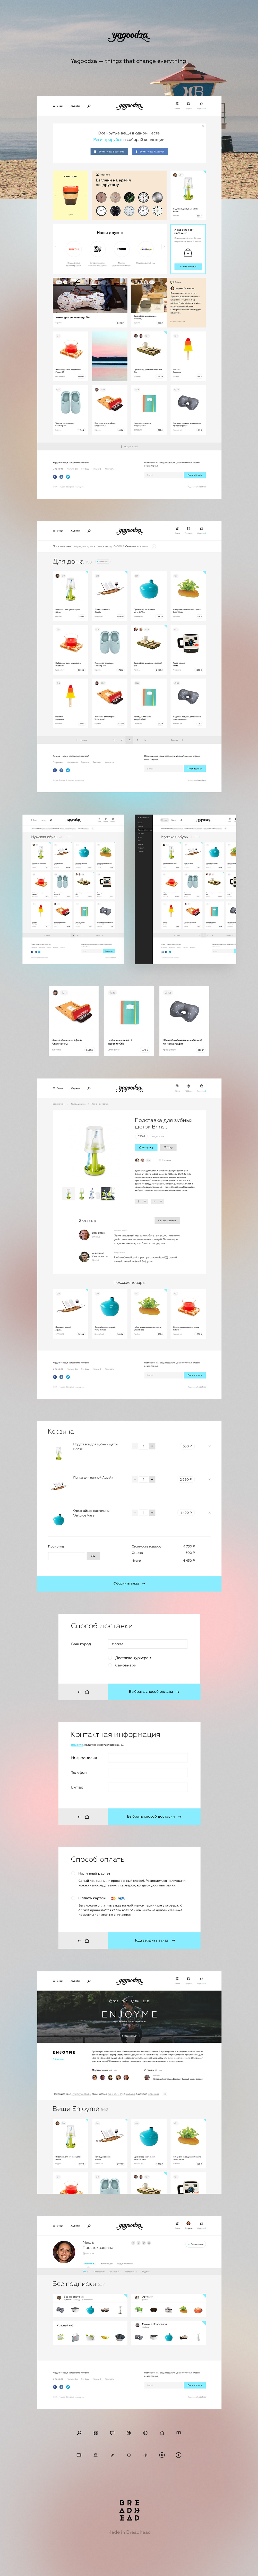 Yagoodza Collects The Most Interesting Things From Russian Online Stores On One Platform And Builds Community Of Fans Of Good Web Design Best Web Design Design